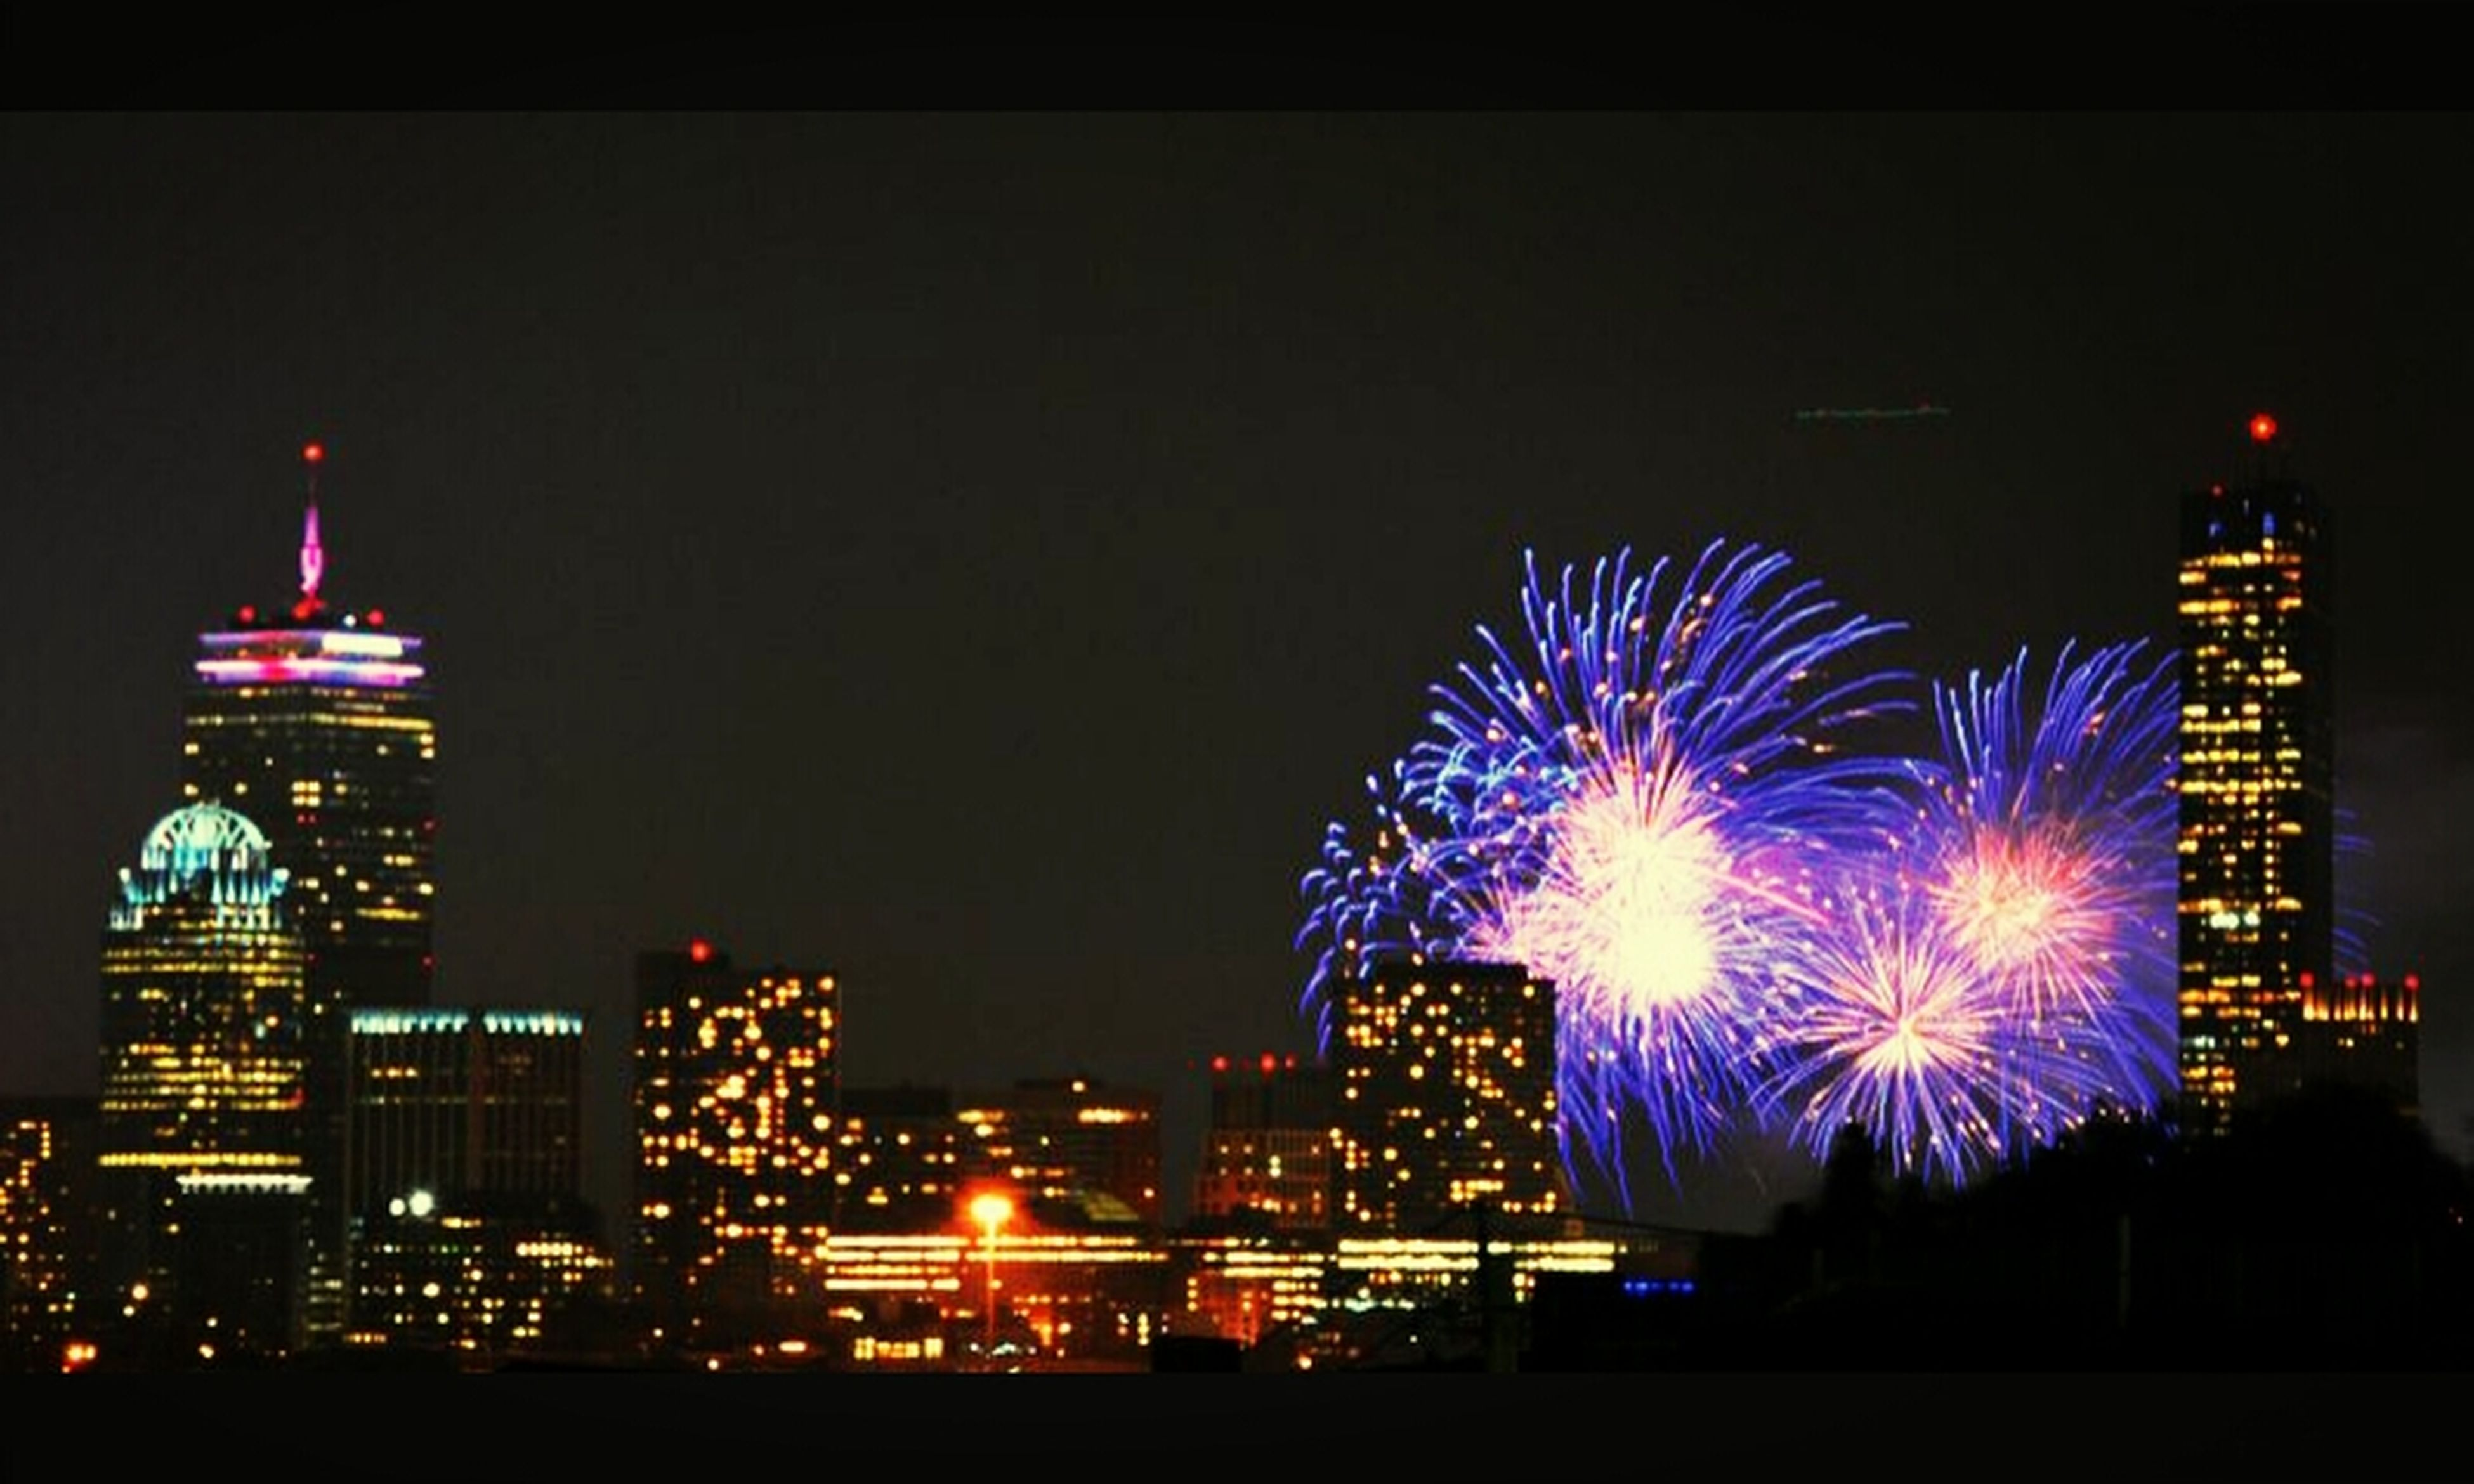 illuminated, night, long exposure, building exterior, city, firework display, built structure, architecture, multi colored, cityscape, glowing, celebration, arts culture and entertainment, sky, exploding, motion, firework - man made object, travel destinations, city life, skyscraper